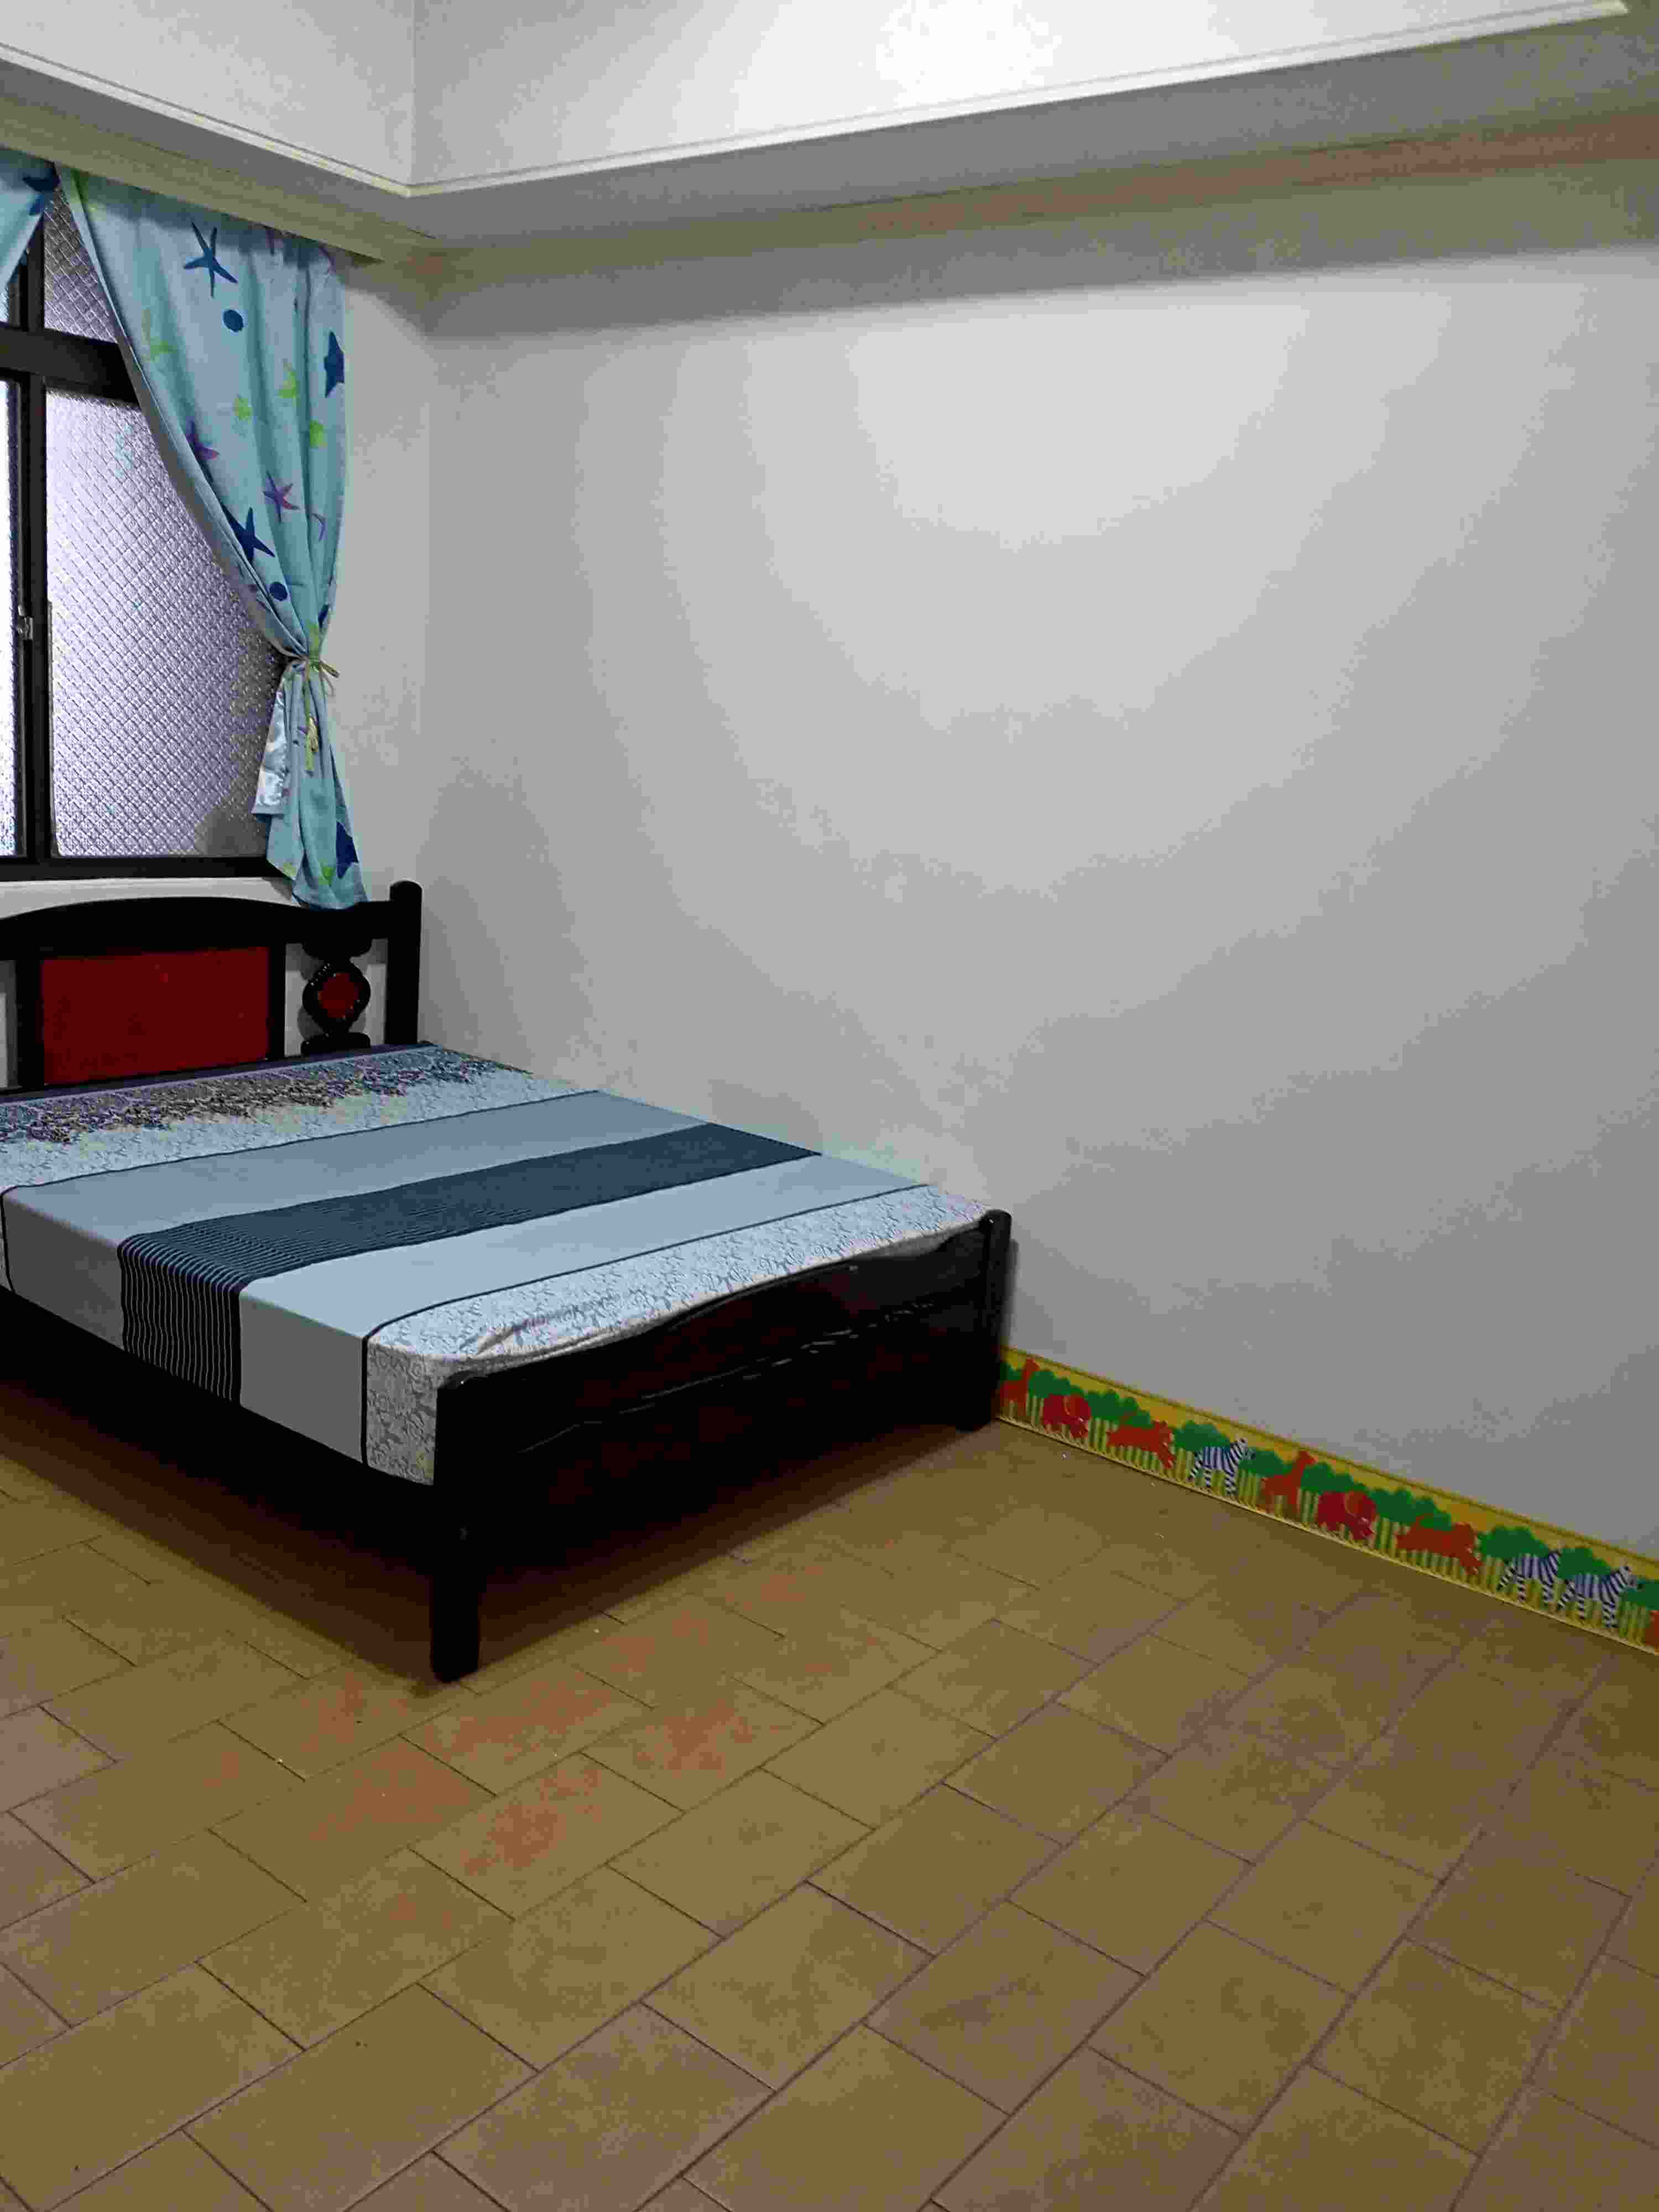 Teaching English and Living in Taiwan Apartments for One Family, nice apt looking for a family or available for sharing image